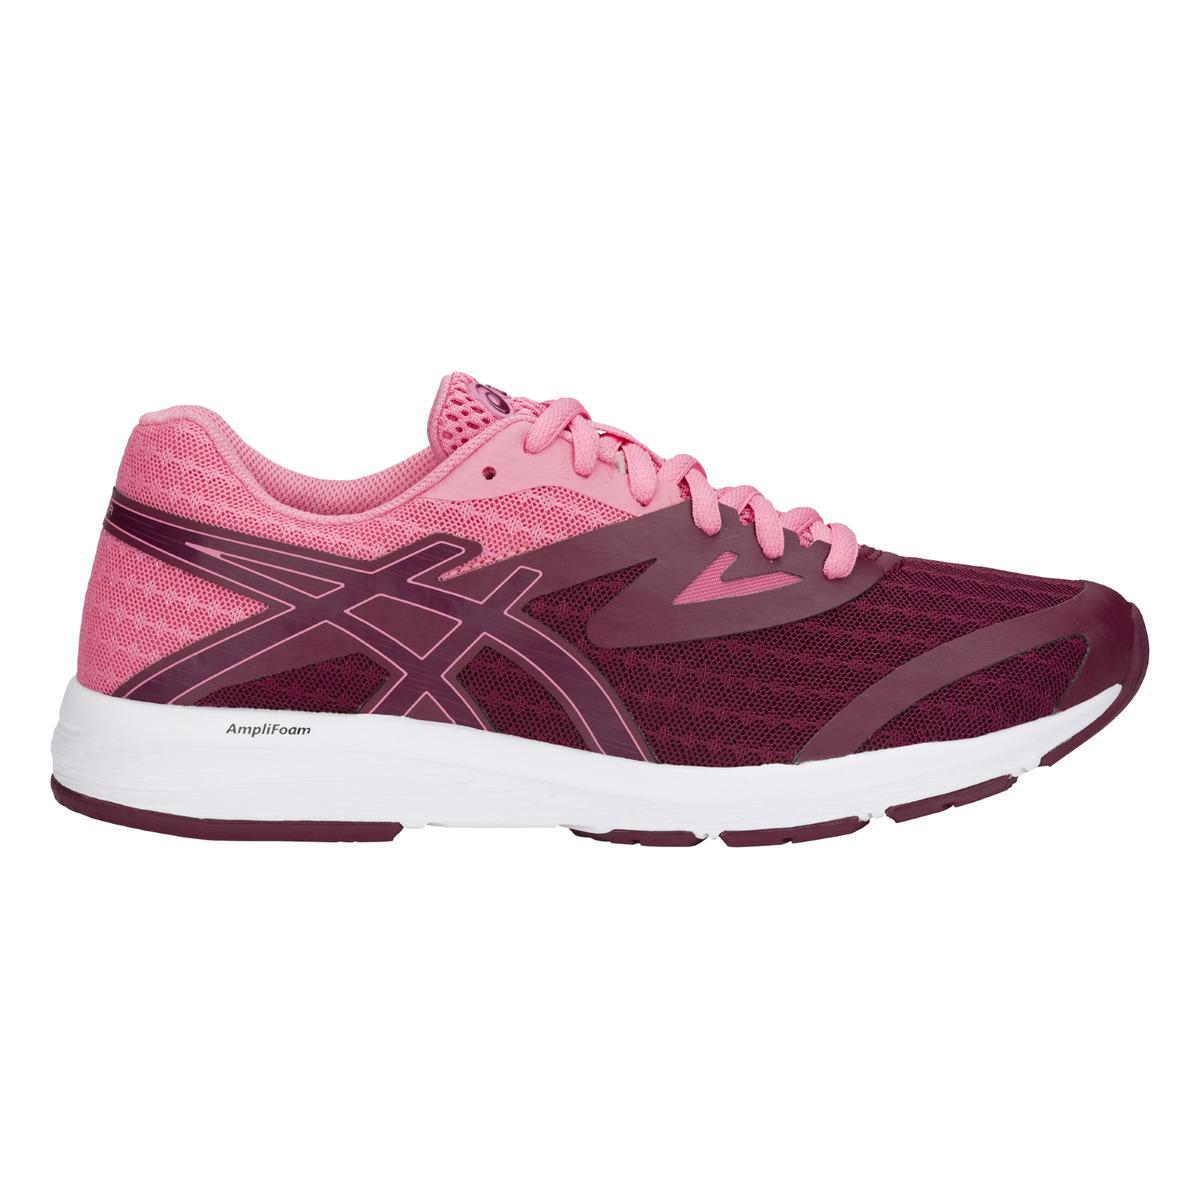 Asics Amplica Running Shoes in Pink - Lyst 571e1c08e